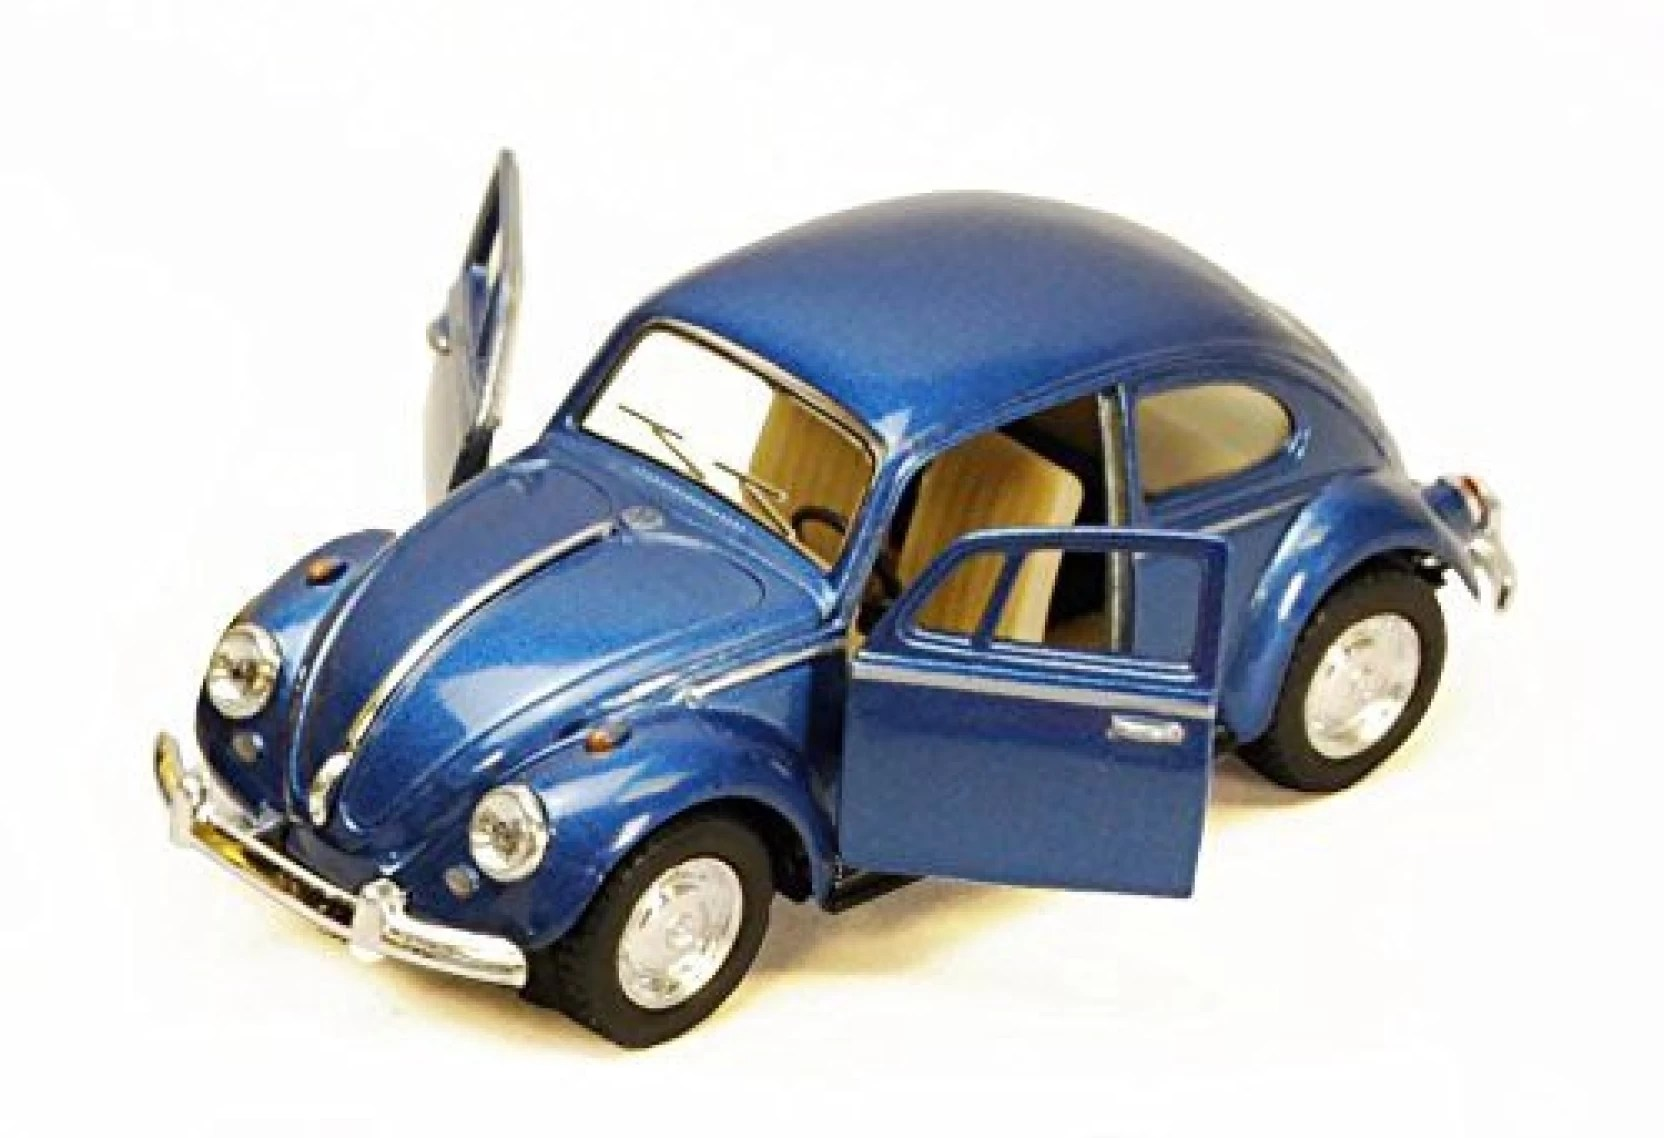 hight resolution of kinsmart 1967 volkswagen classic beetle blue 5057d 1 32 scale diecast model toy car brand new but no box multicolor